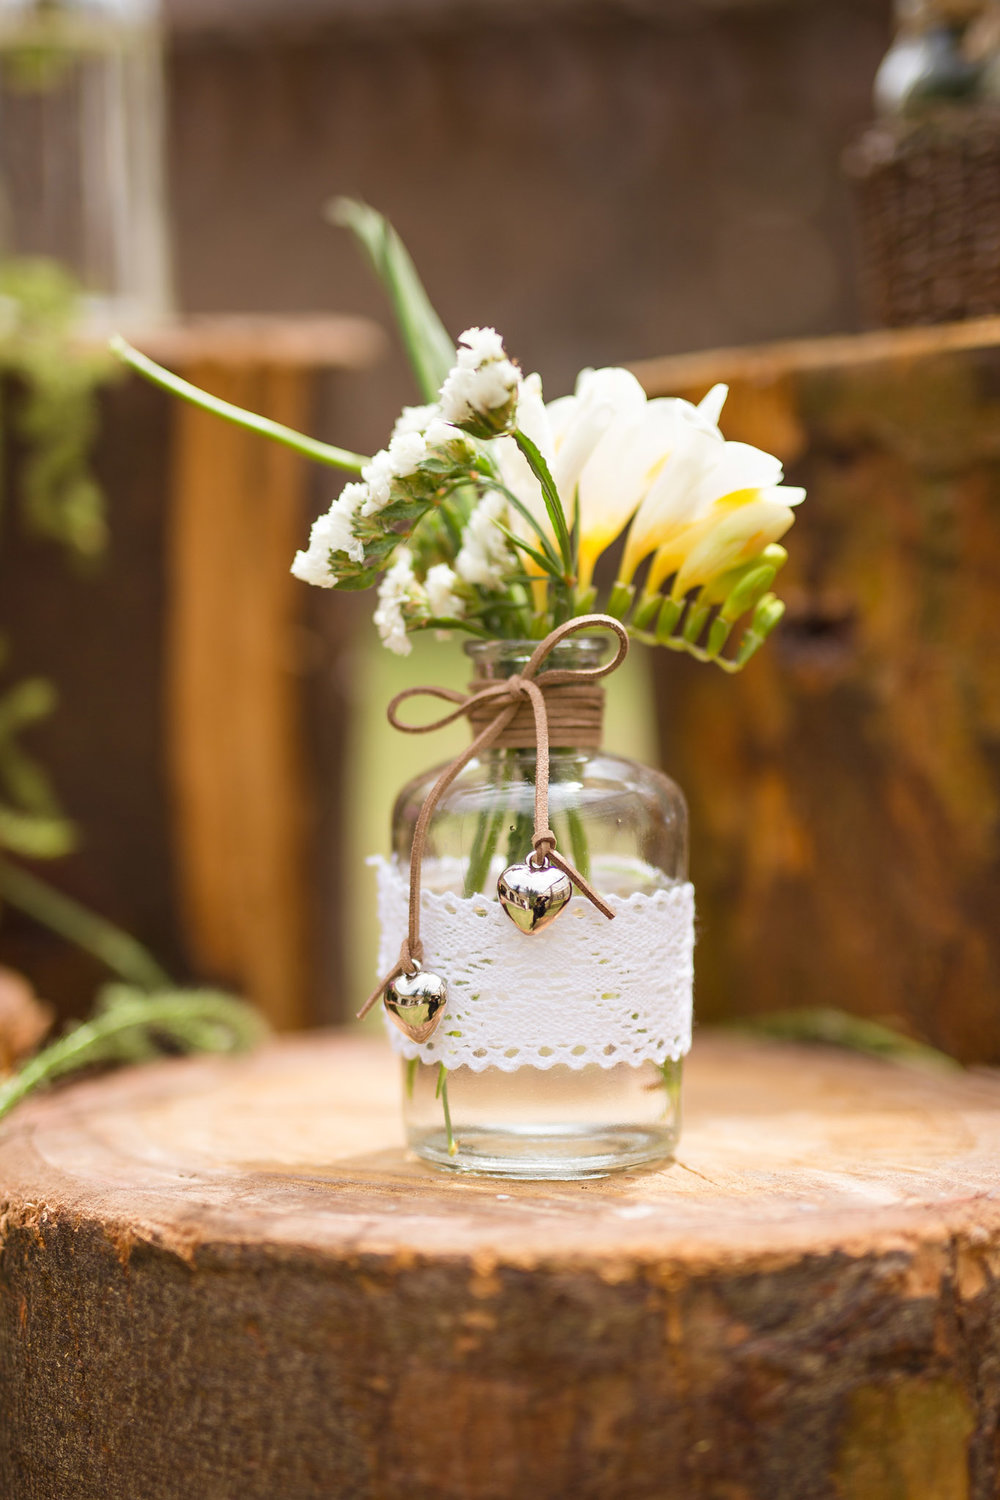 Wedding-Travellers-Destination-Wedding-Peru-Cusco-Hacienda-Sarapampa-Sacred-Valley-decoration-white-flower-glass